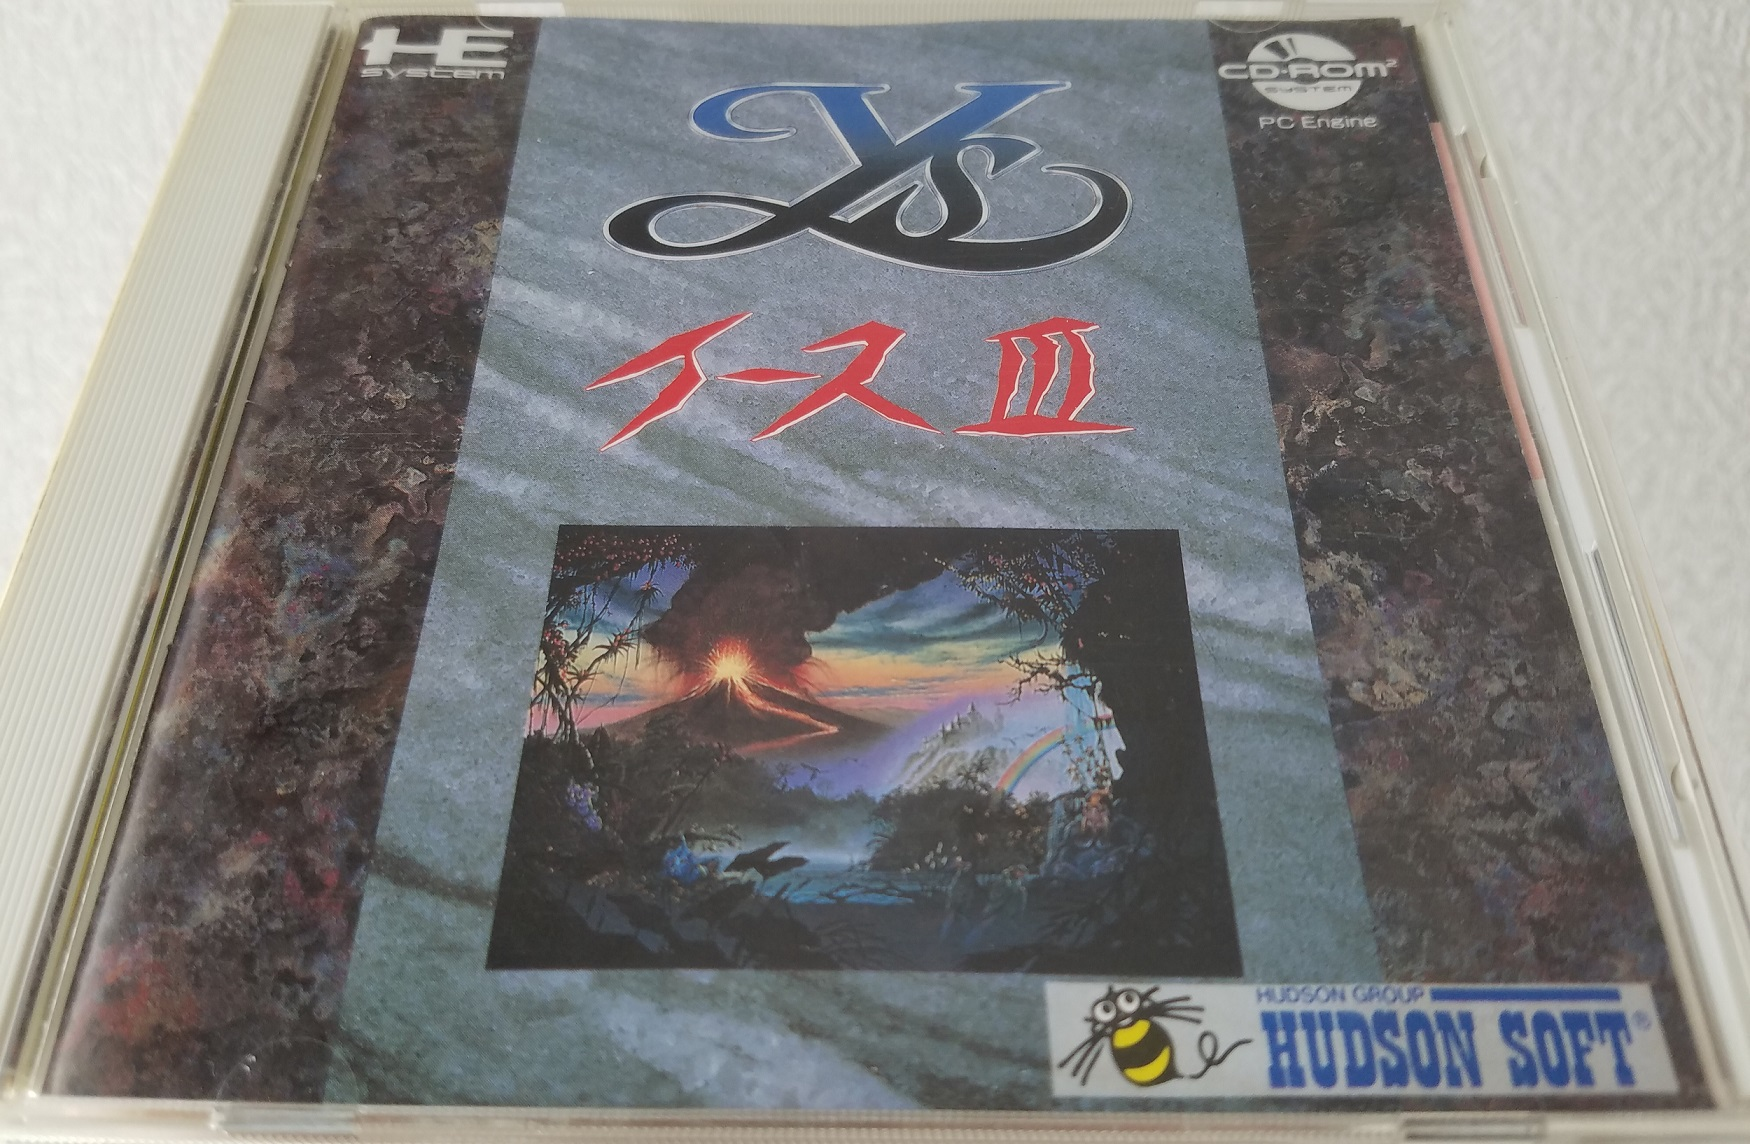 Ys III pc-engine case front cover